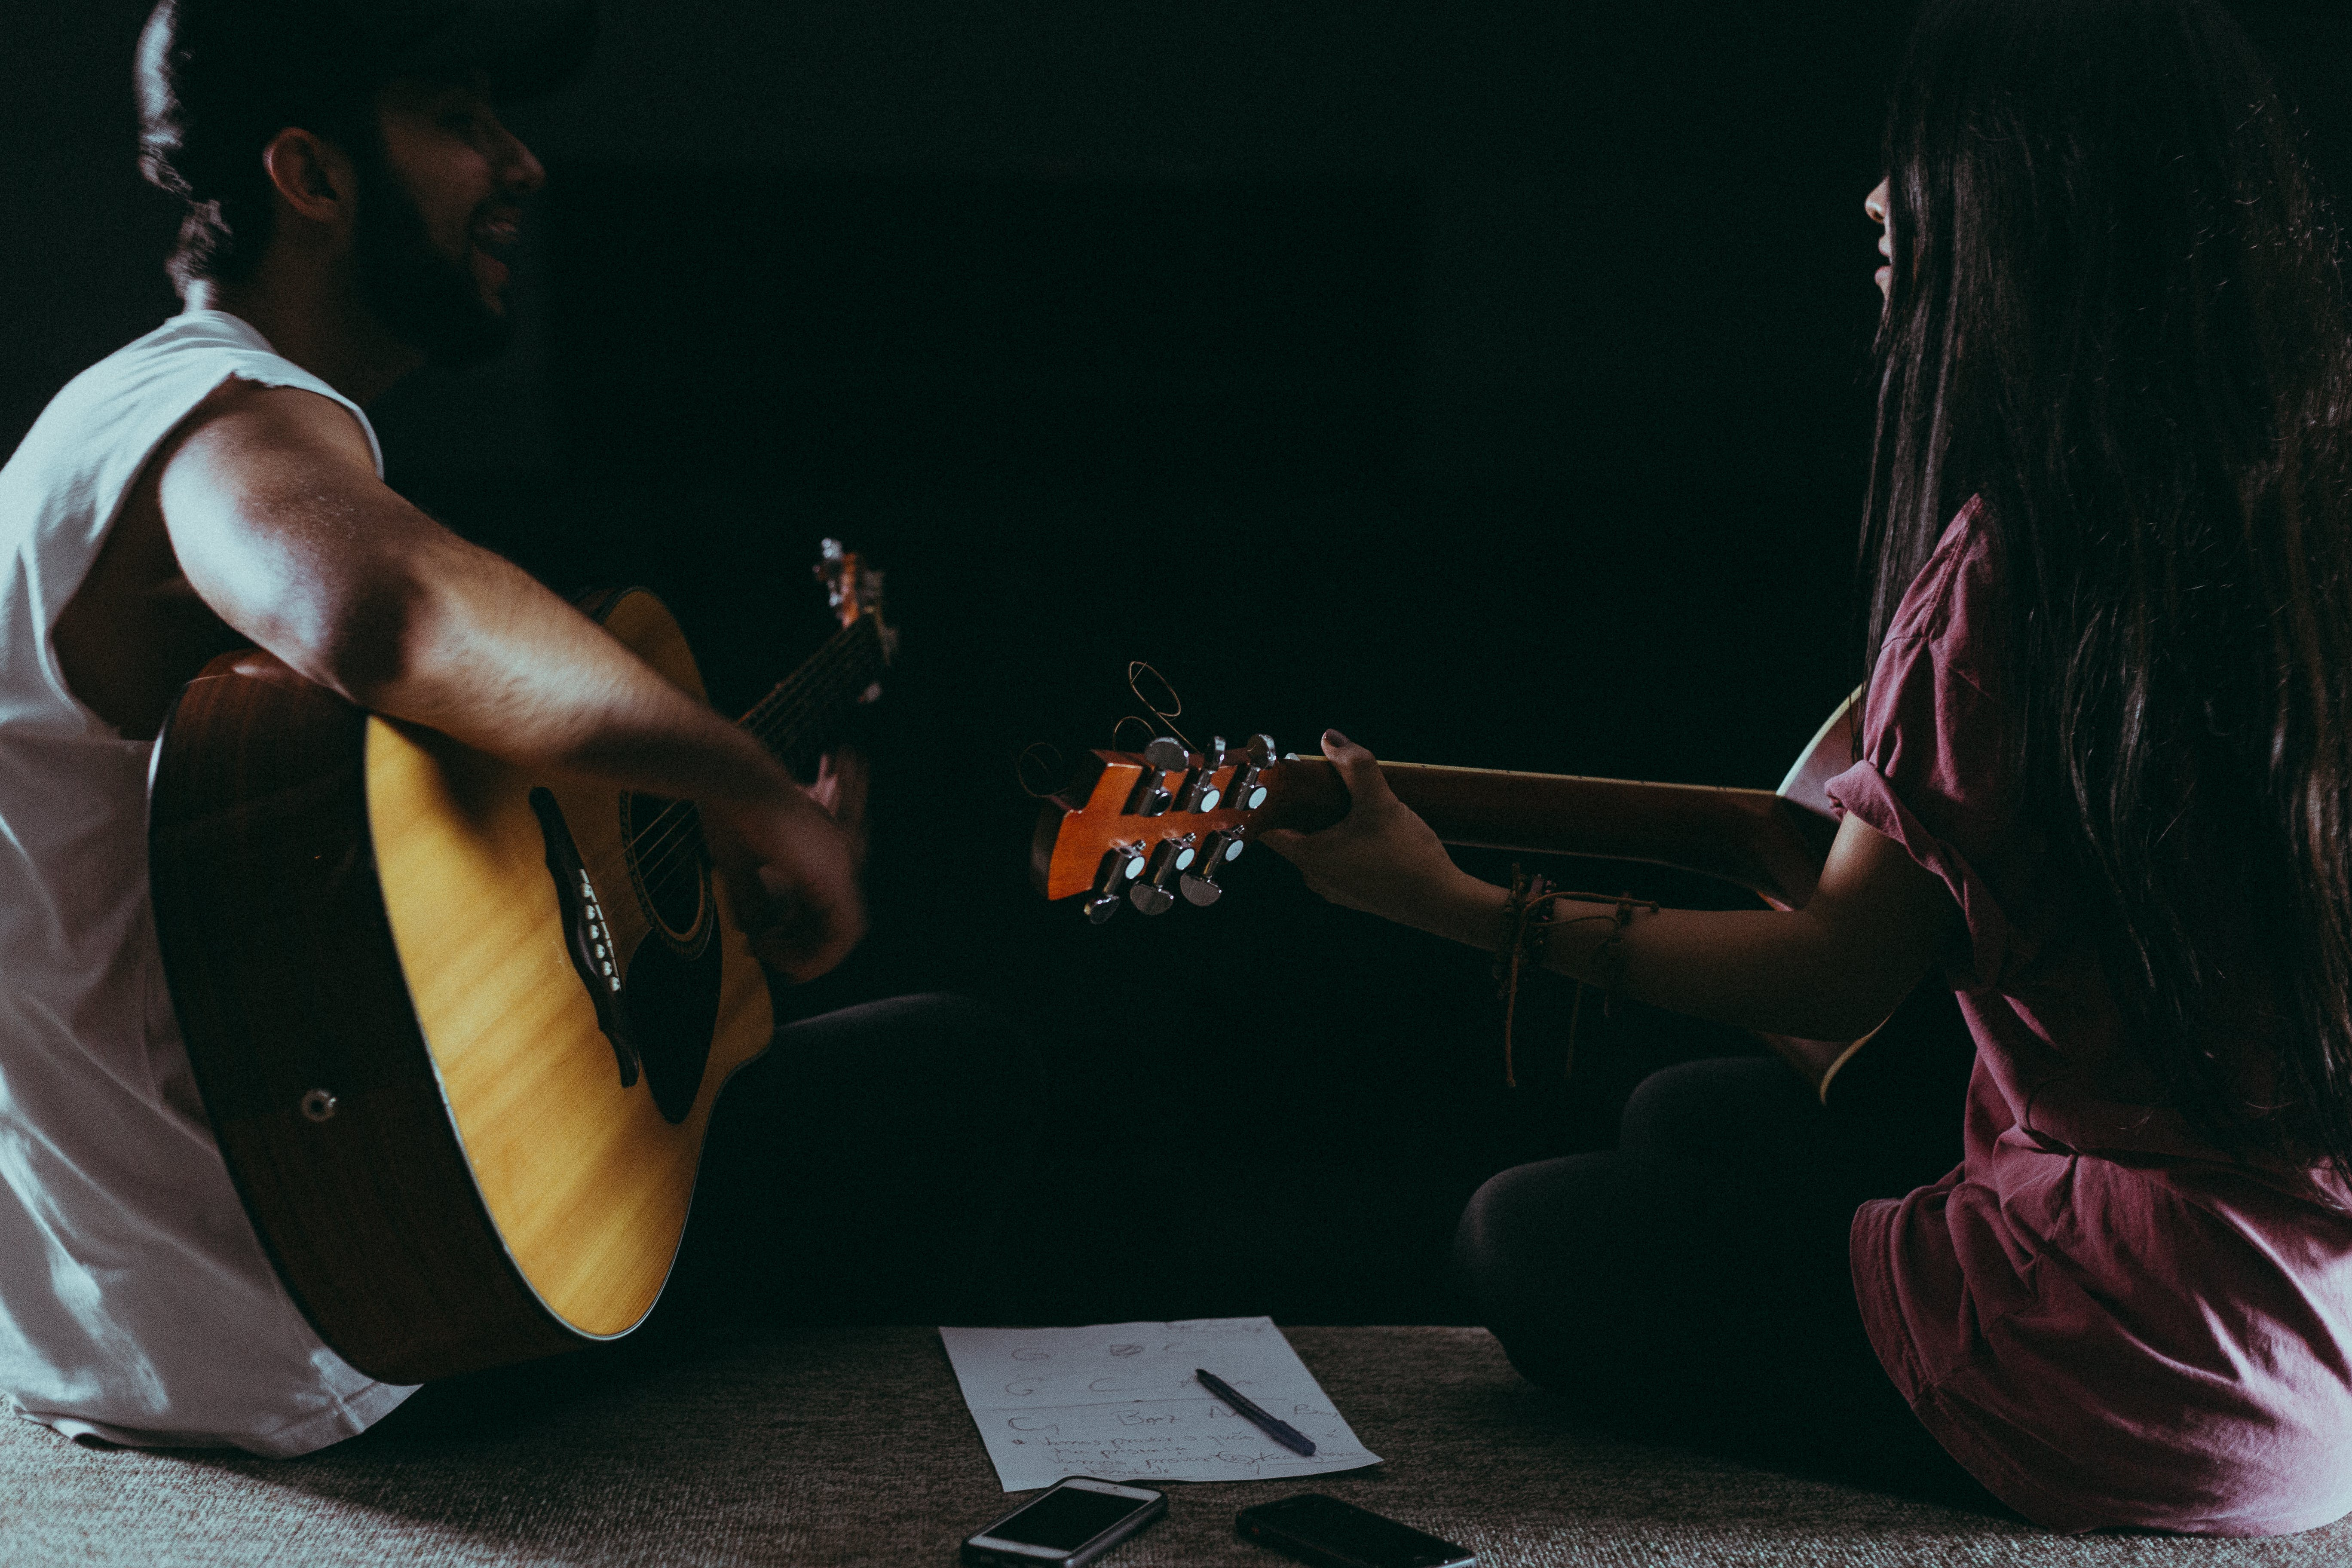 Man and Woman Playing Guitar